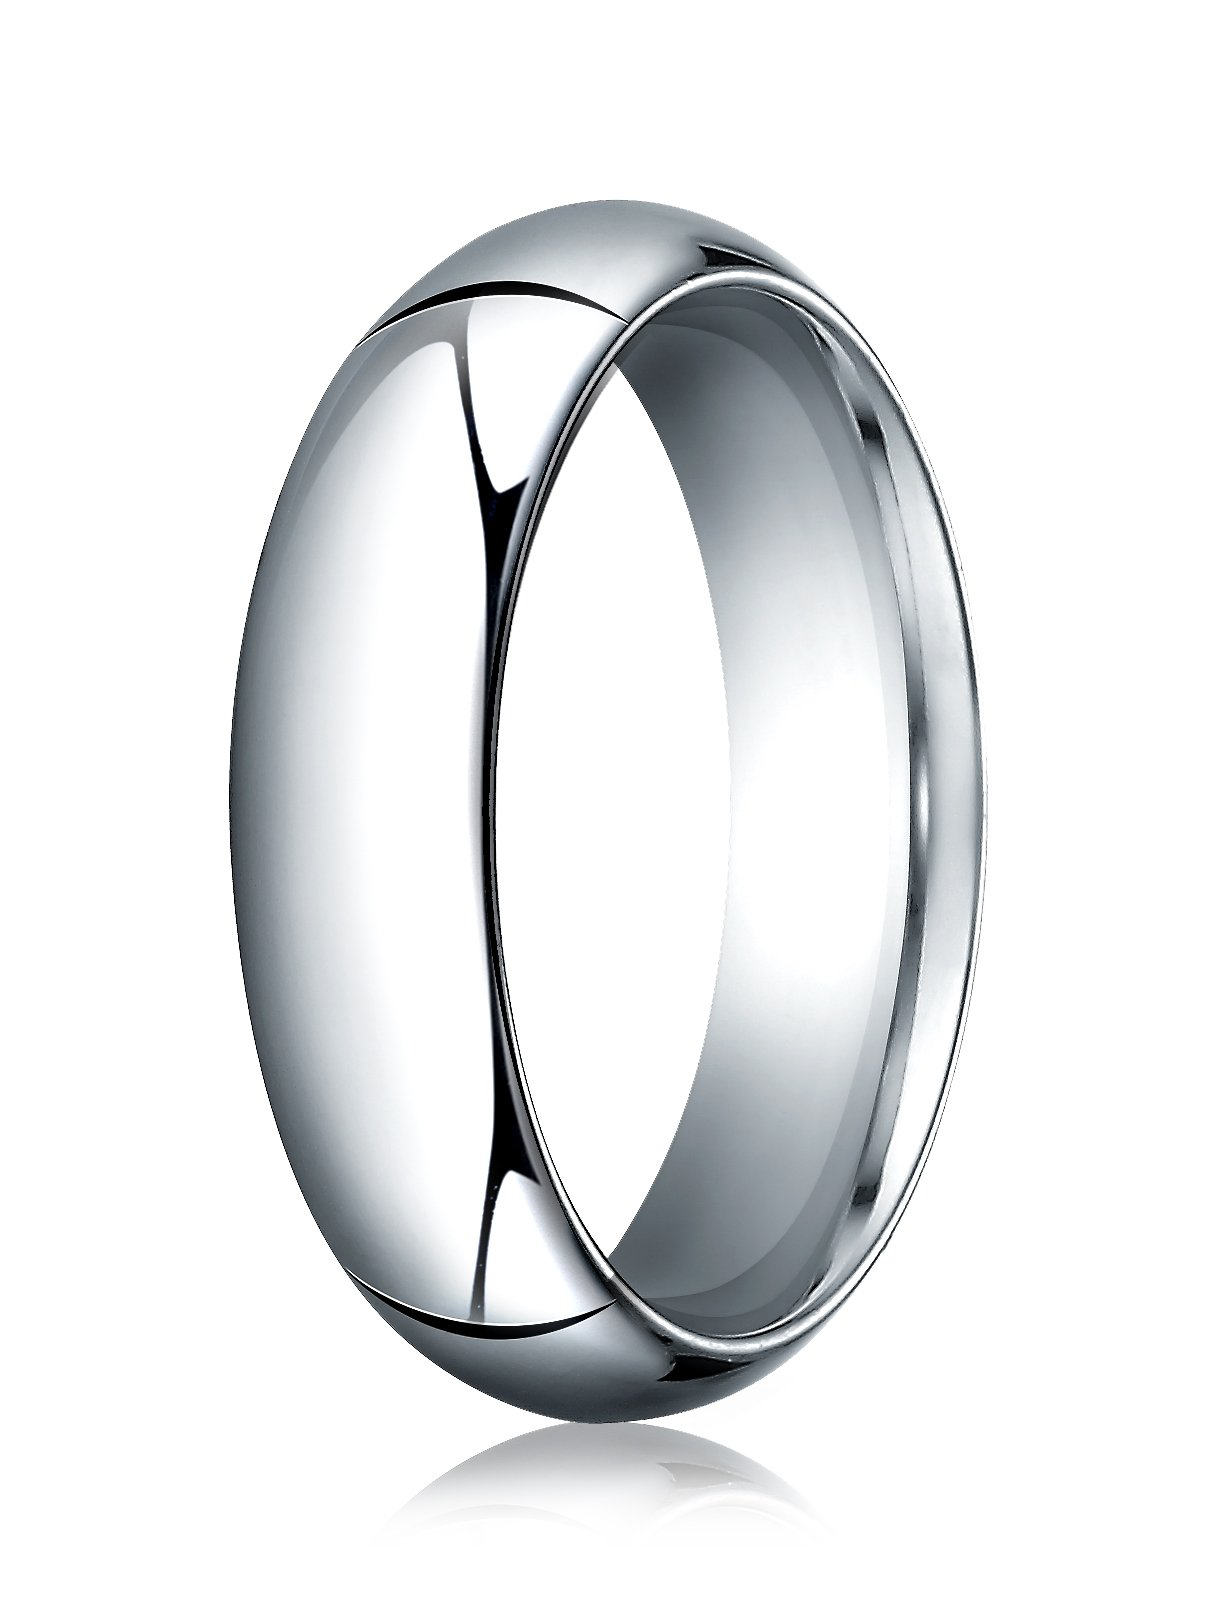 Womens 14K White Gold, 6.0mm High Dome Heavy Comfort-Fit Ring (sz 9.5)